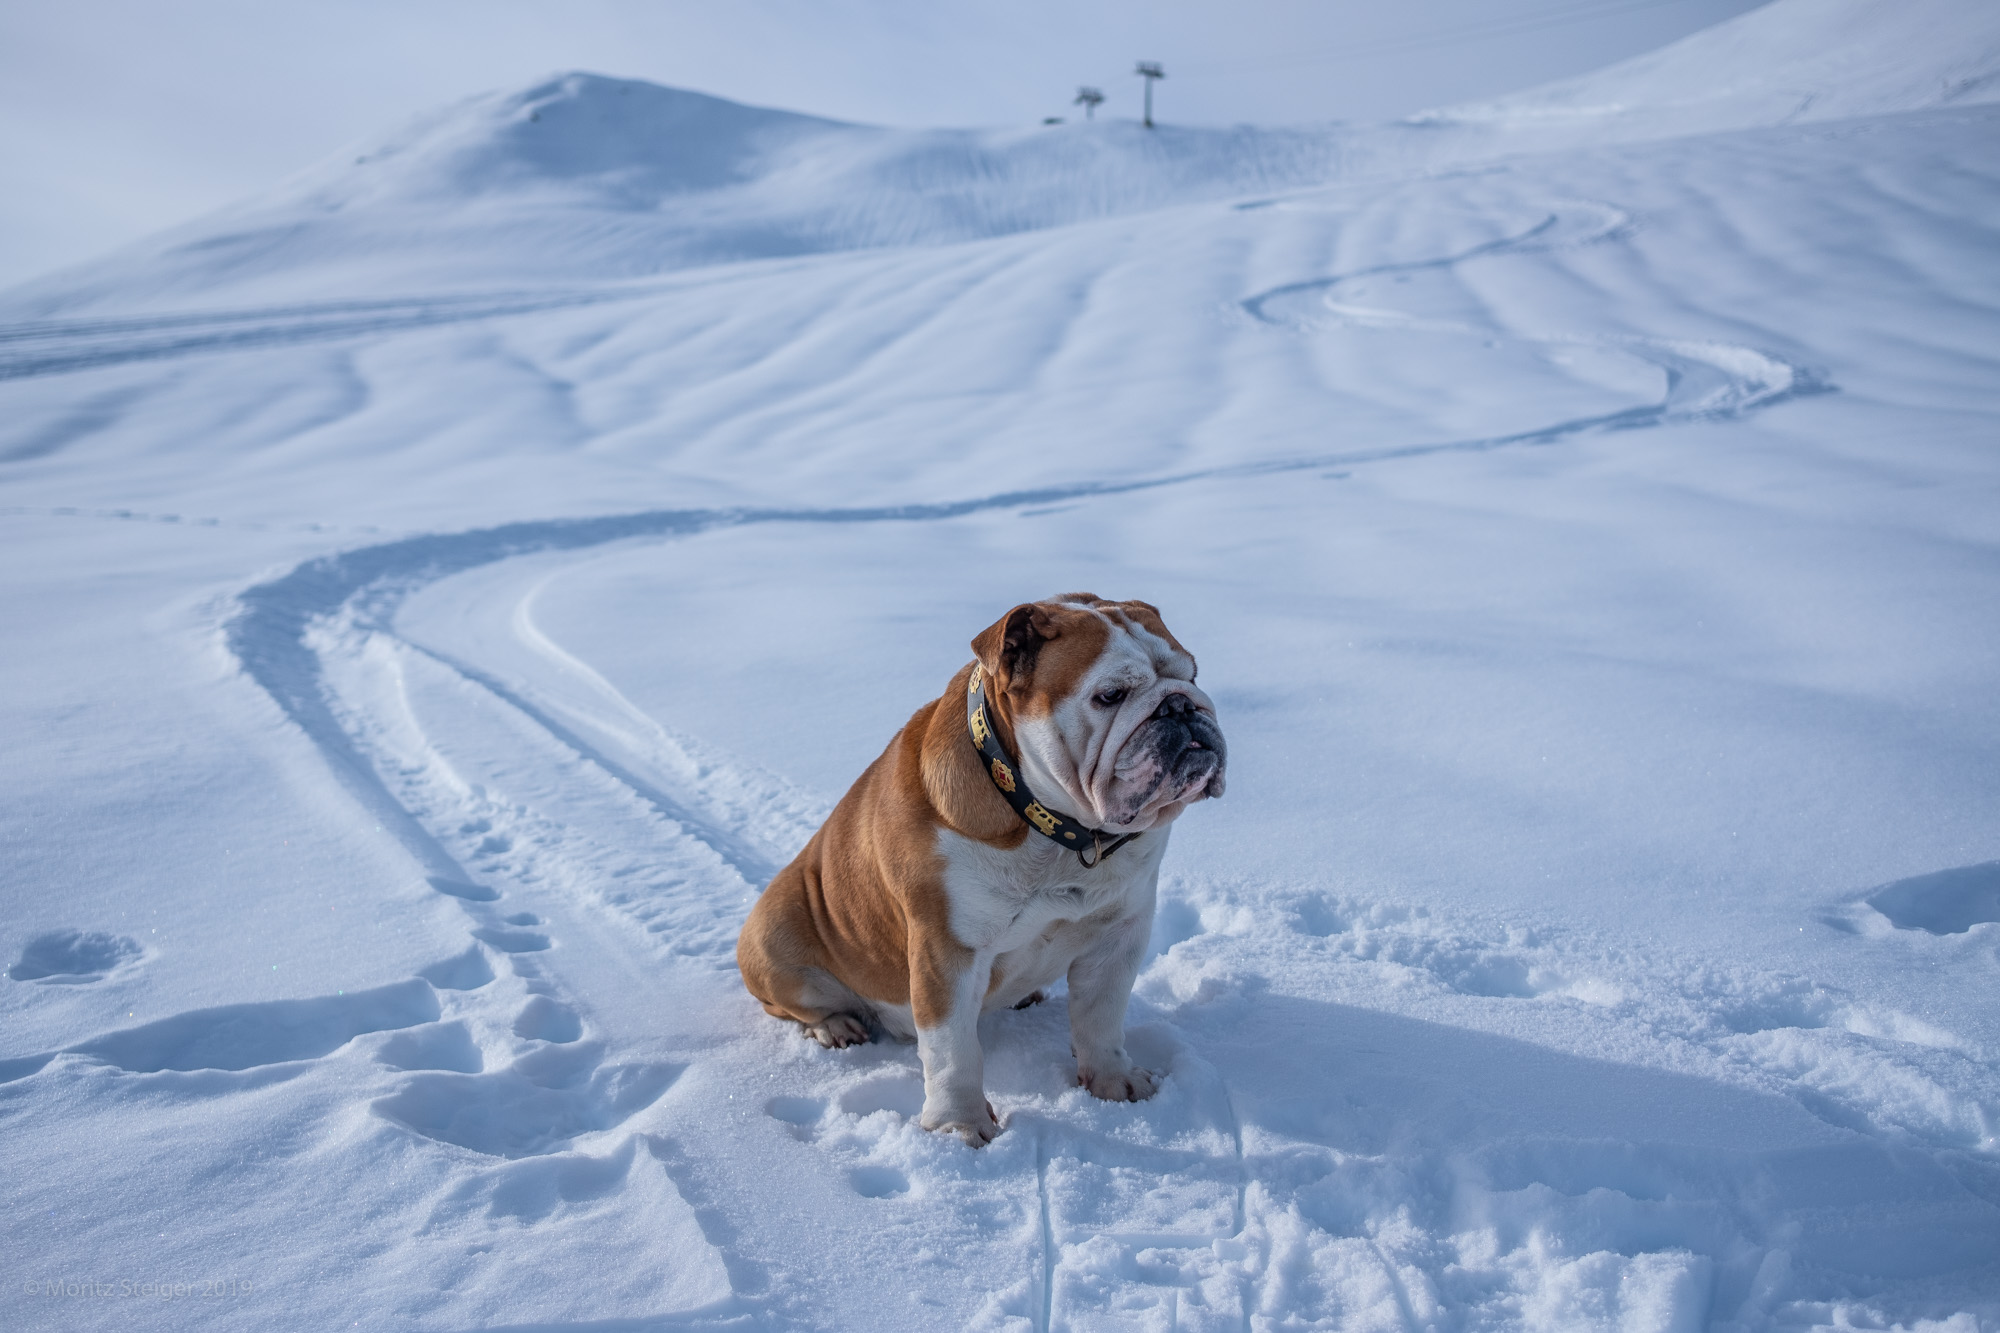 Rudy in snow 'laying trails' in the Swiss mountains.